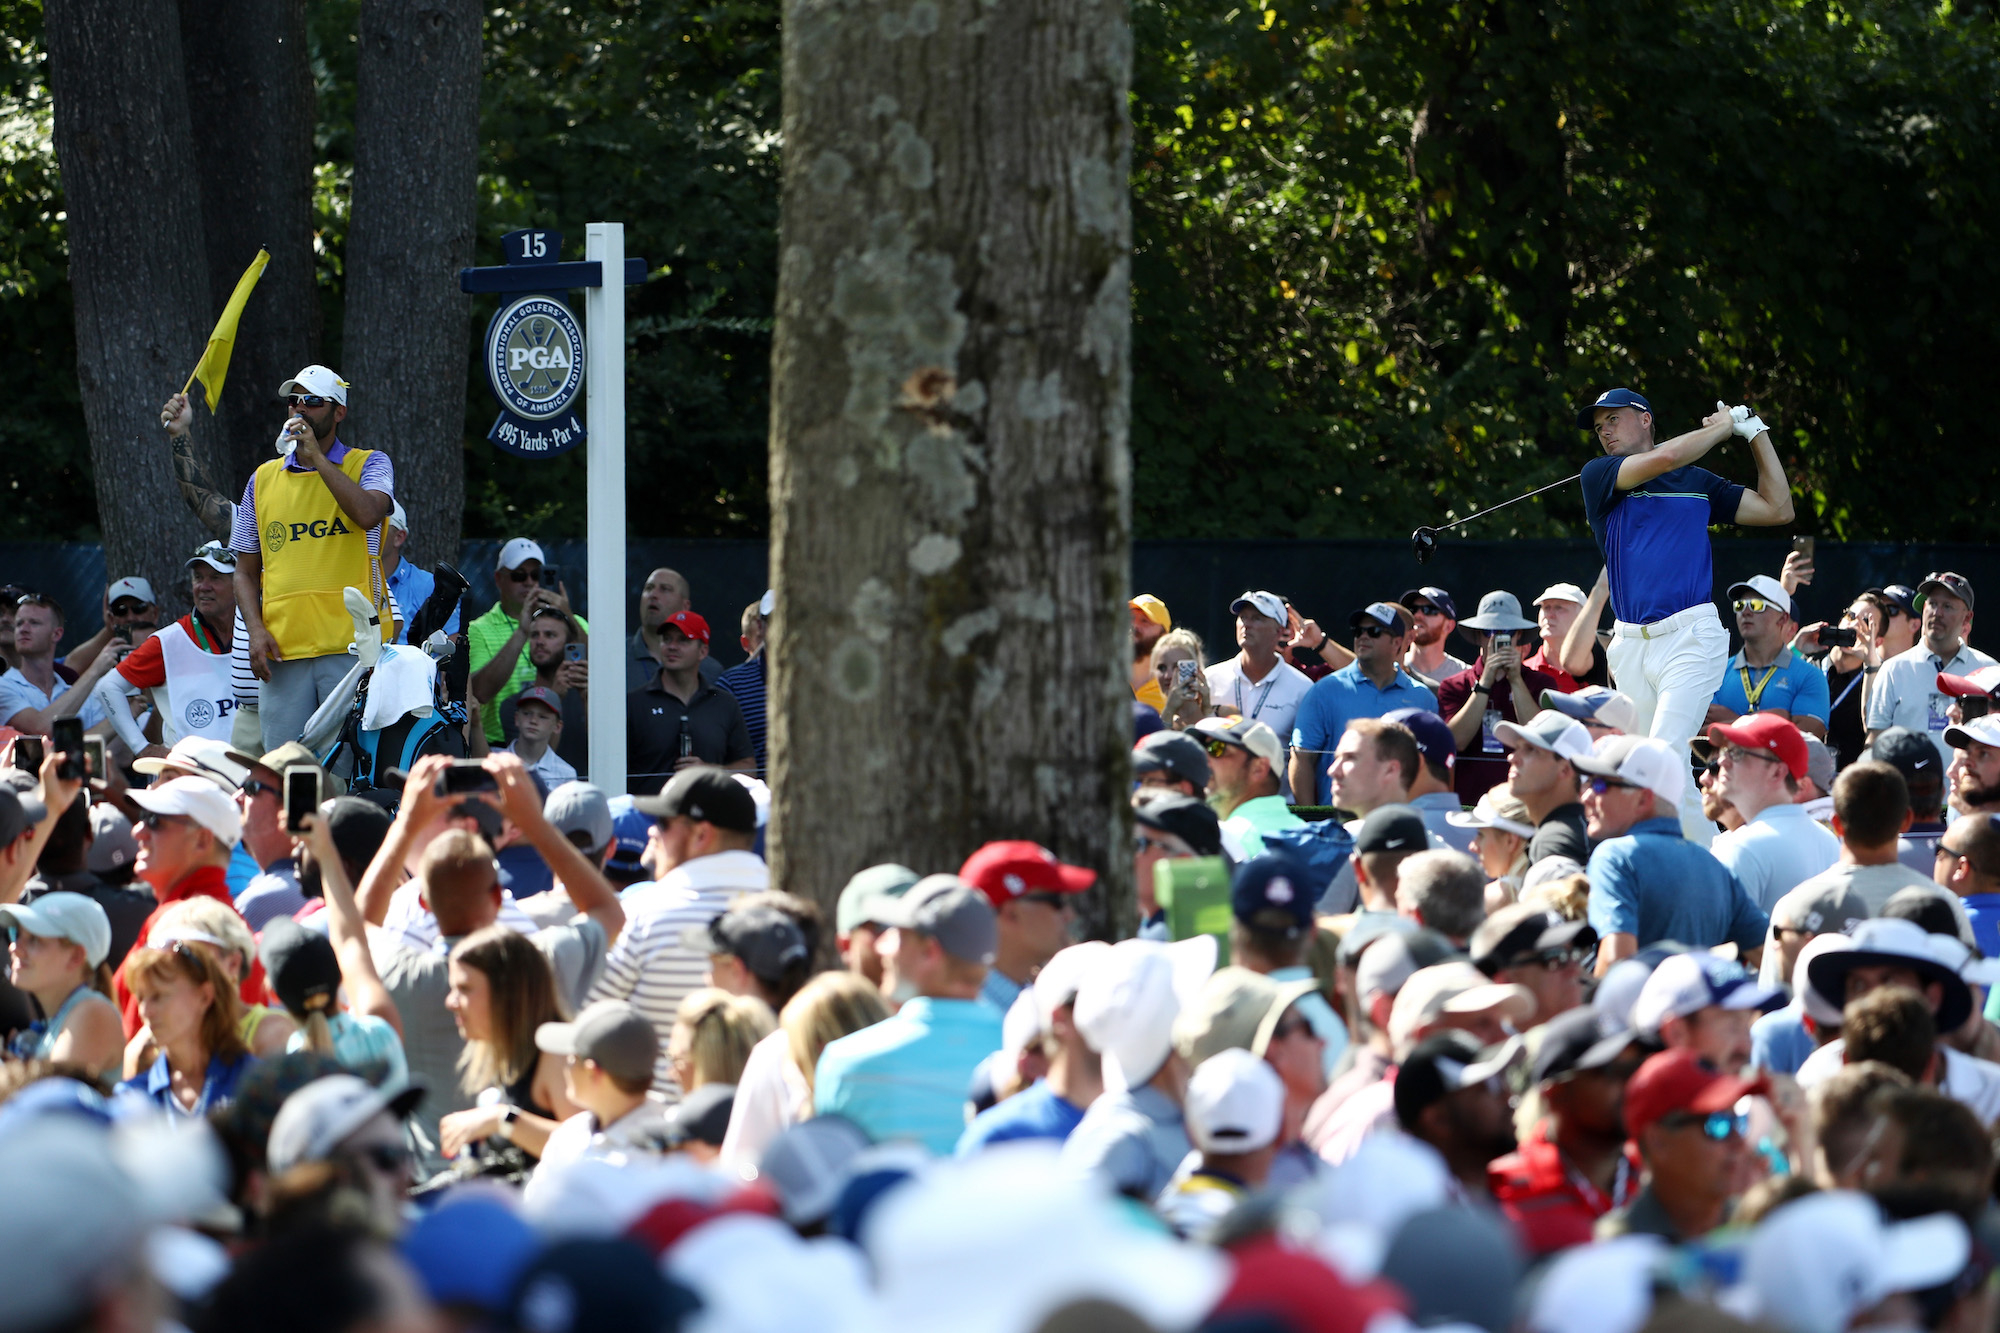 2018 PGA Championship: Round 3 - Tee Shot on No. 15